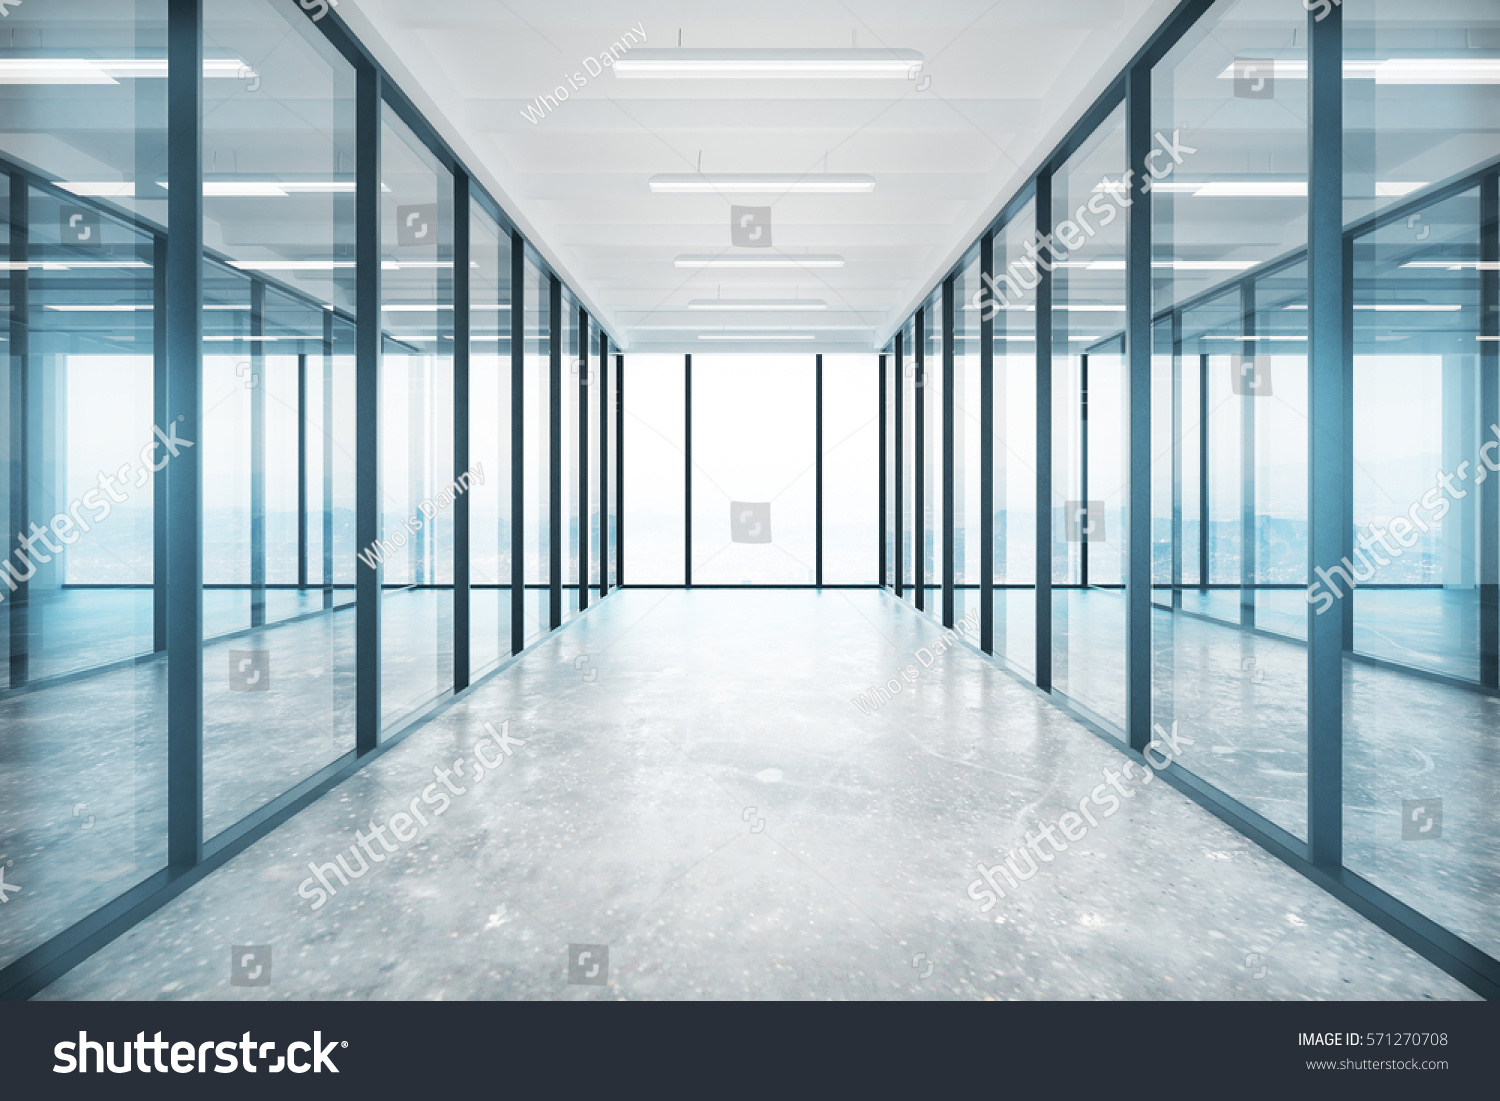 Online image photo editor shutterstock editor for Corporate office design concepts